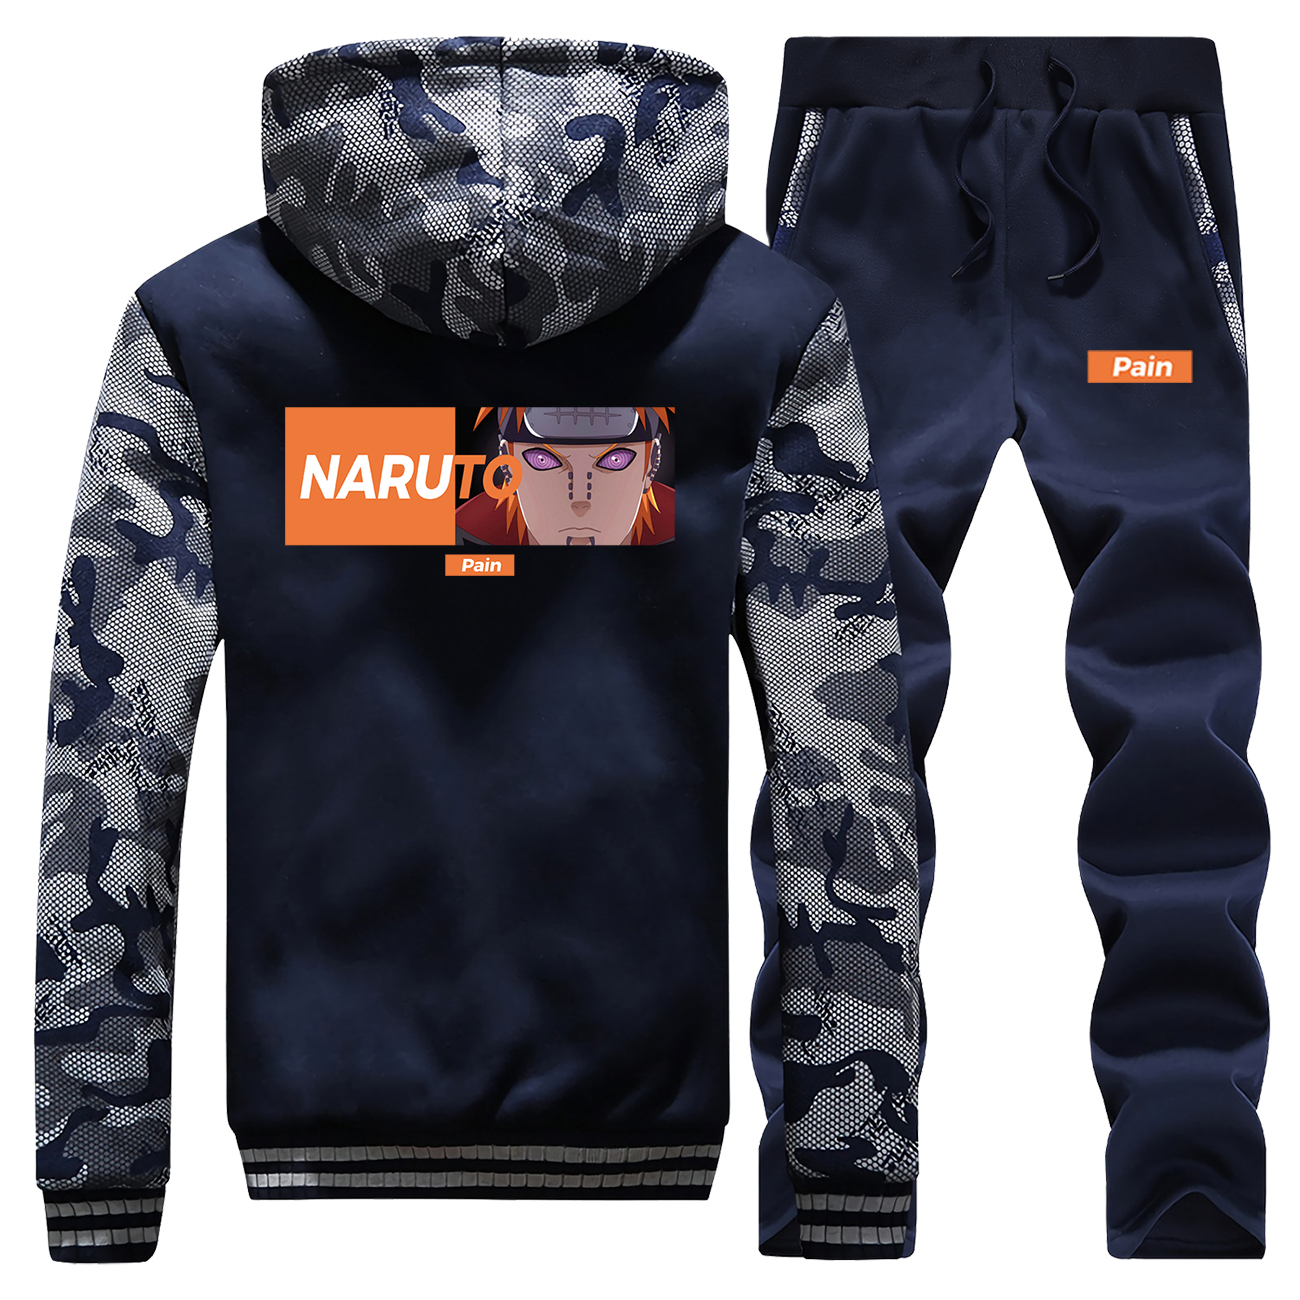 Akatsuki Hoodies Pants Sets Naruto Men Tracksuit Coats Japanese Anime Track Suit Winter Thicken Fleece Jacket Camo 2 Piece Suits